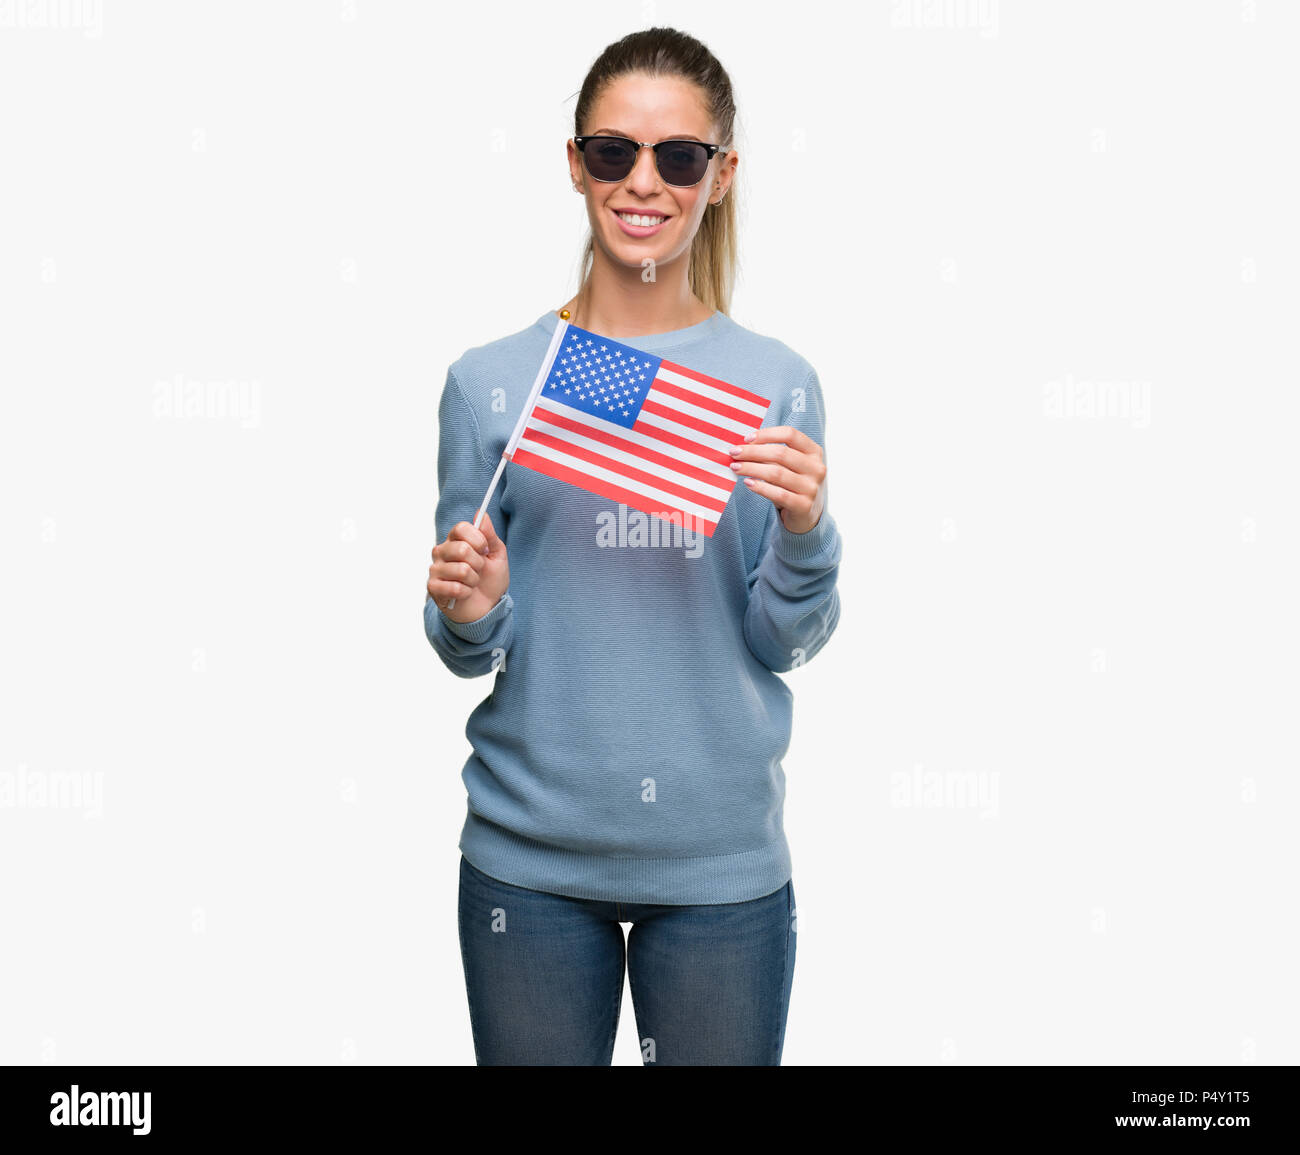 Beautiful young woman holding USA flag with a happy face standing and smiling with a confident smile showing teeth - Stock Image